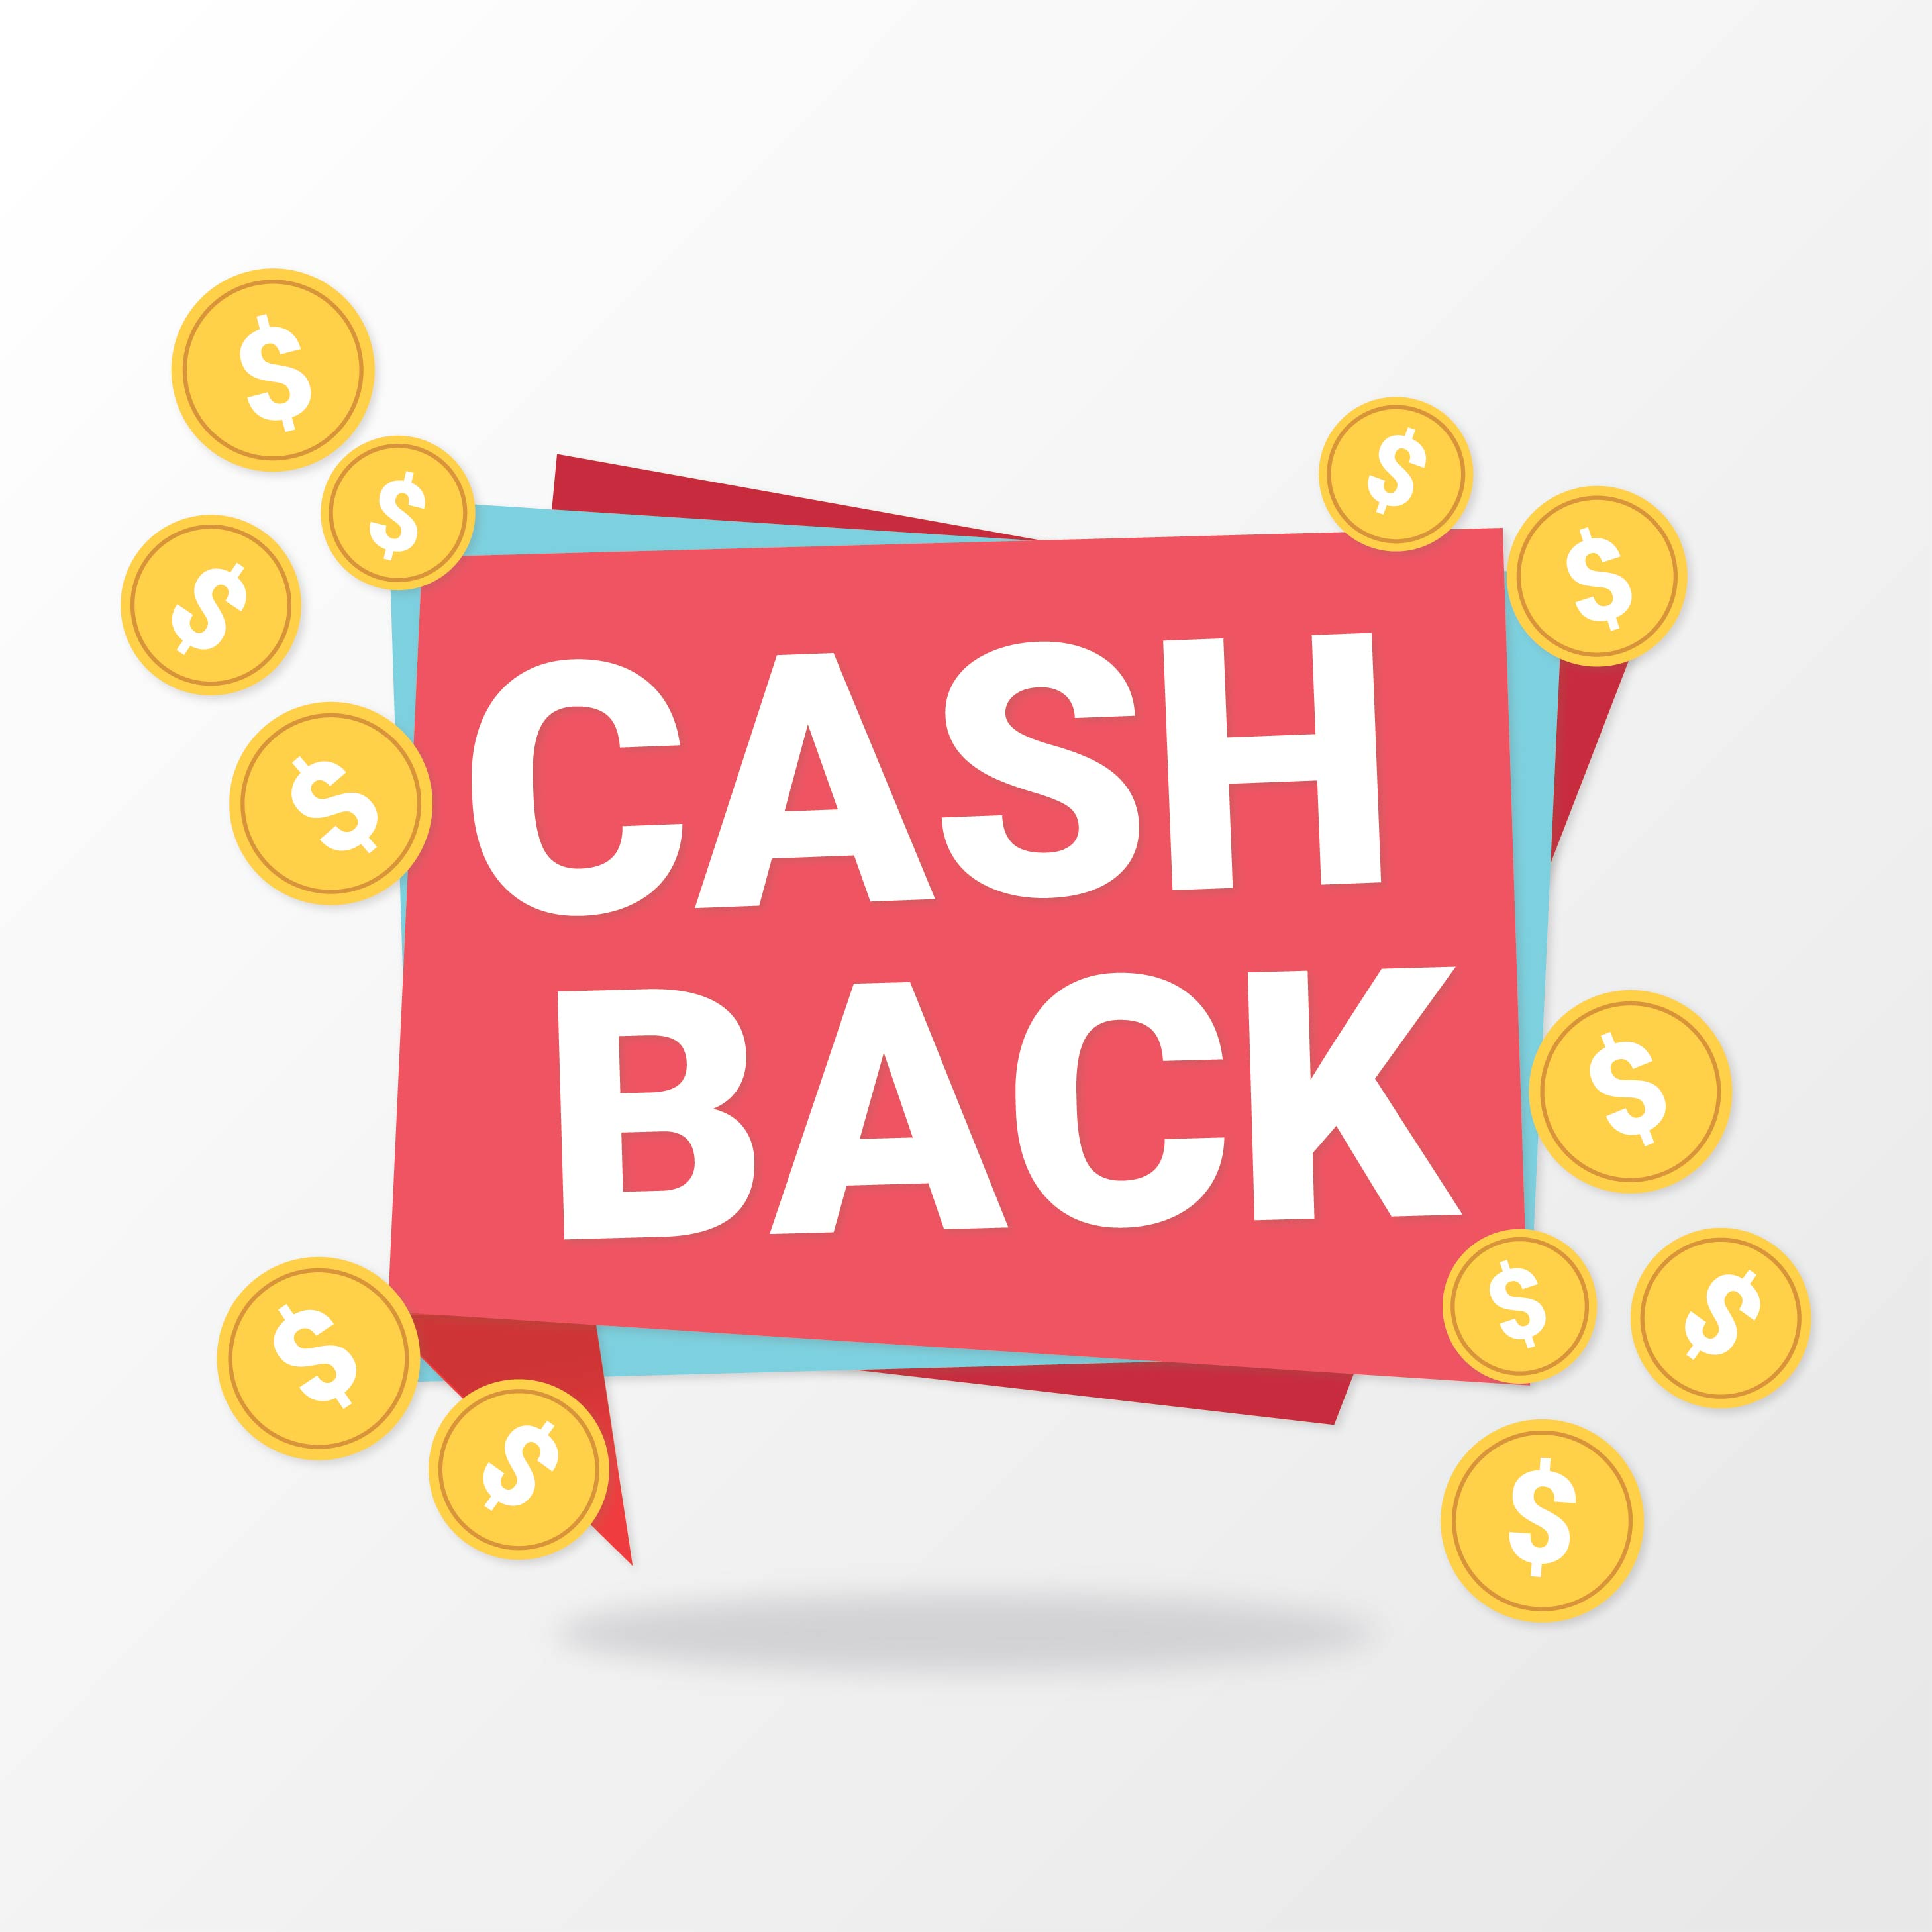 Cash Back Isolated Sign - Download Free Vector Art, Stock Graphics & Images